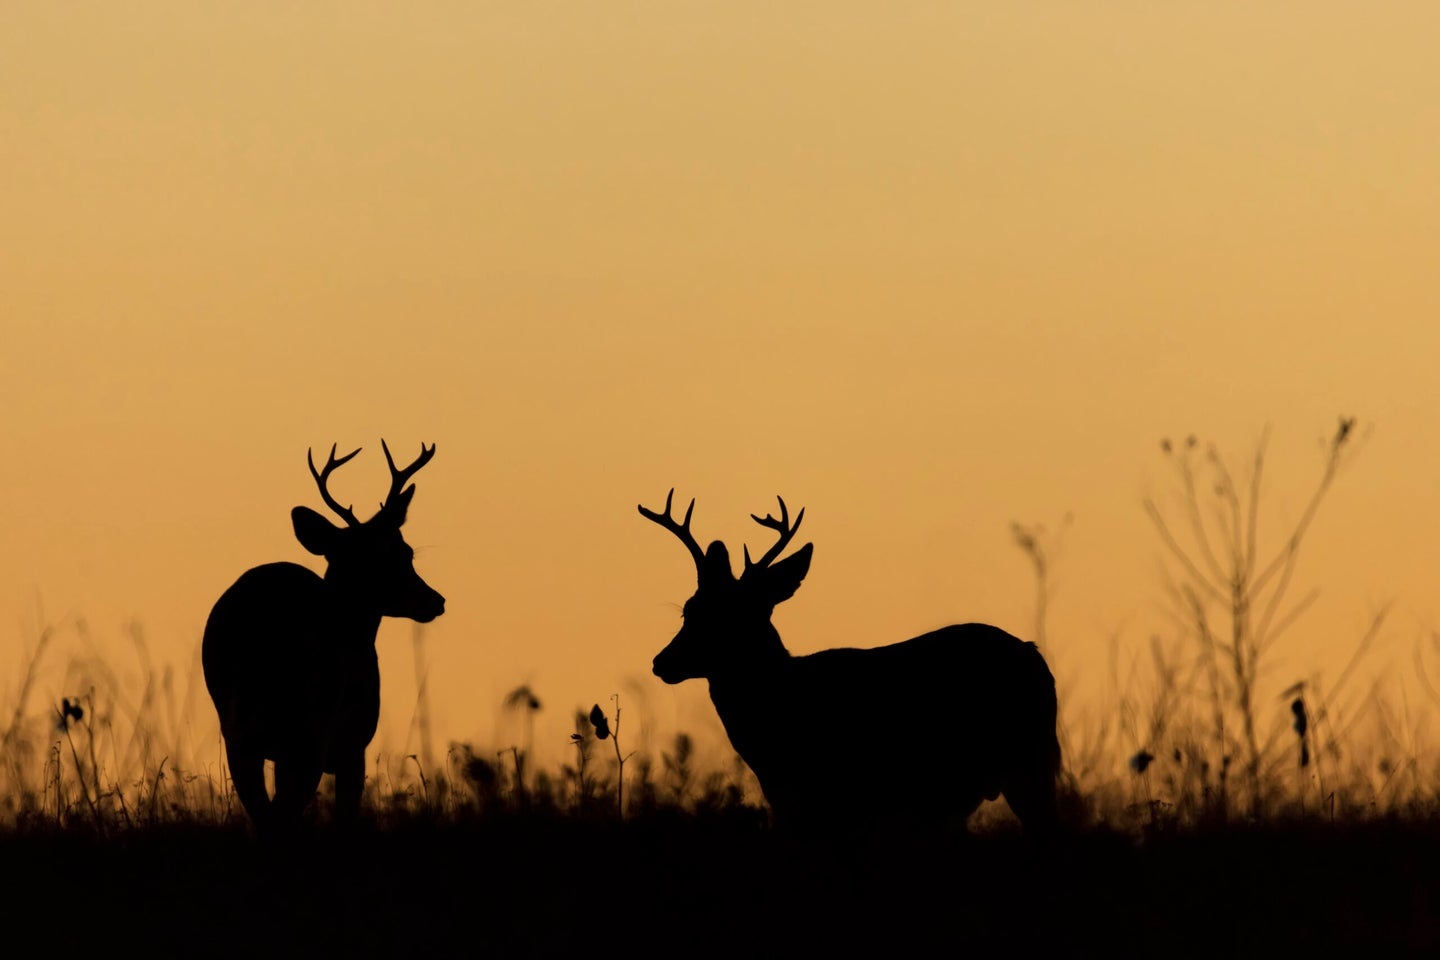 New York's current hunting laws prevents deer hunting after sunset.